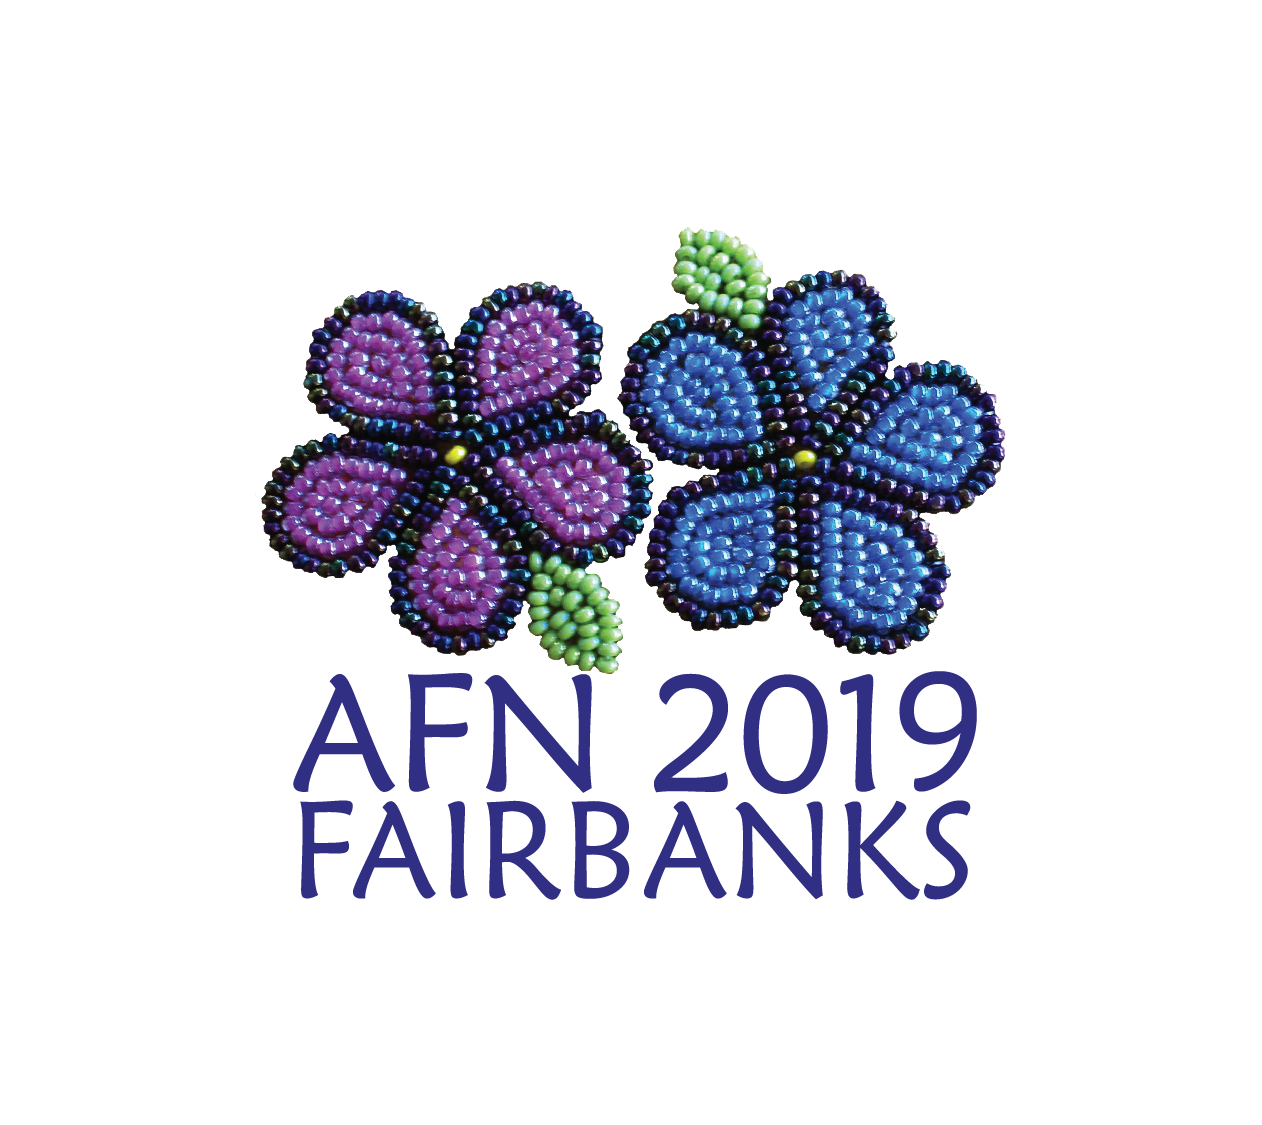 Fairbanks Welcomes AFN October 17-19, 2019